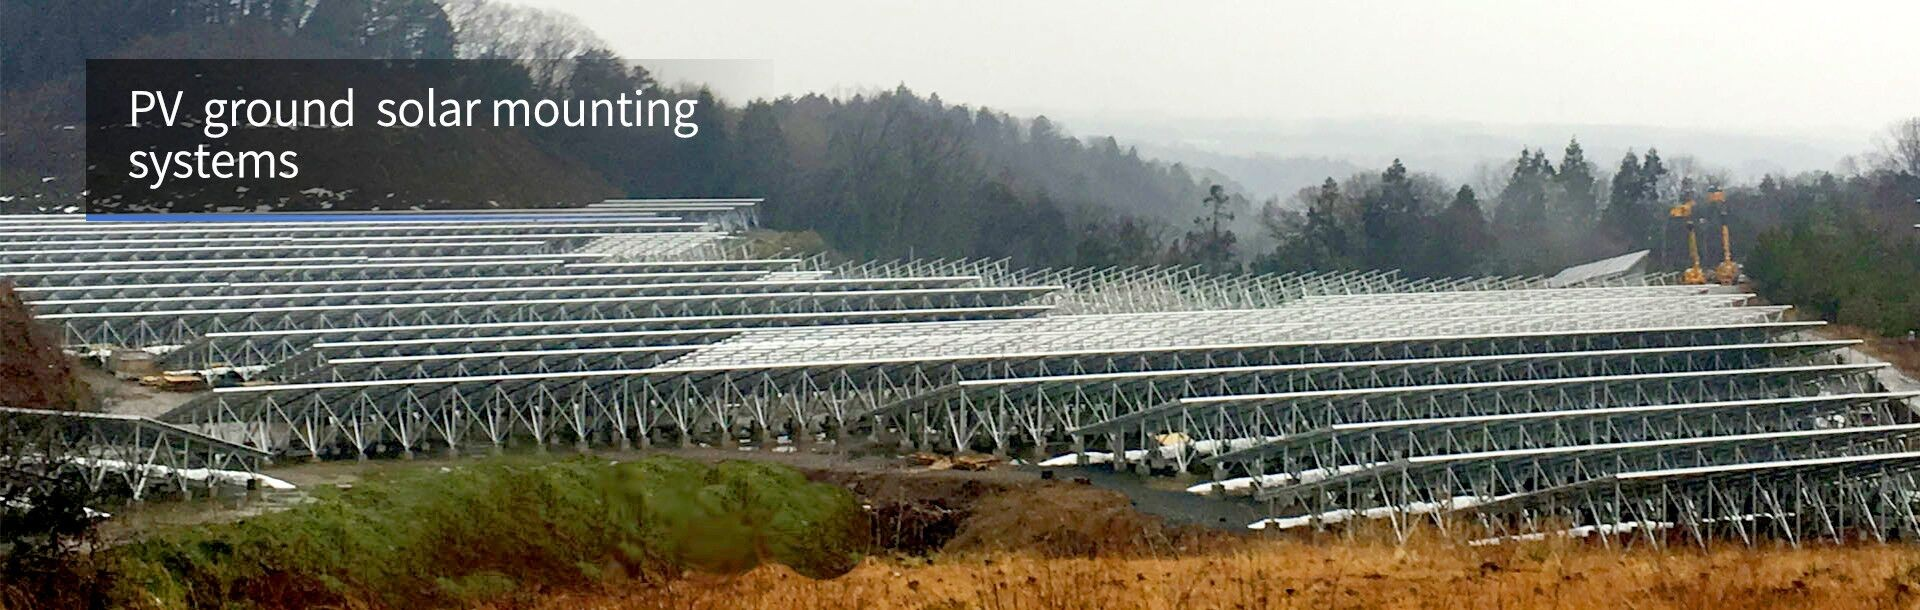 Concrete foundation solar PV mounting systems